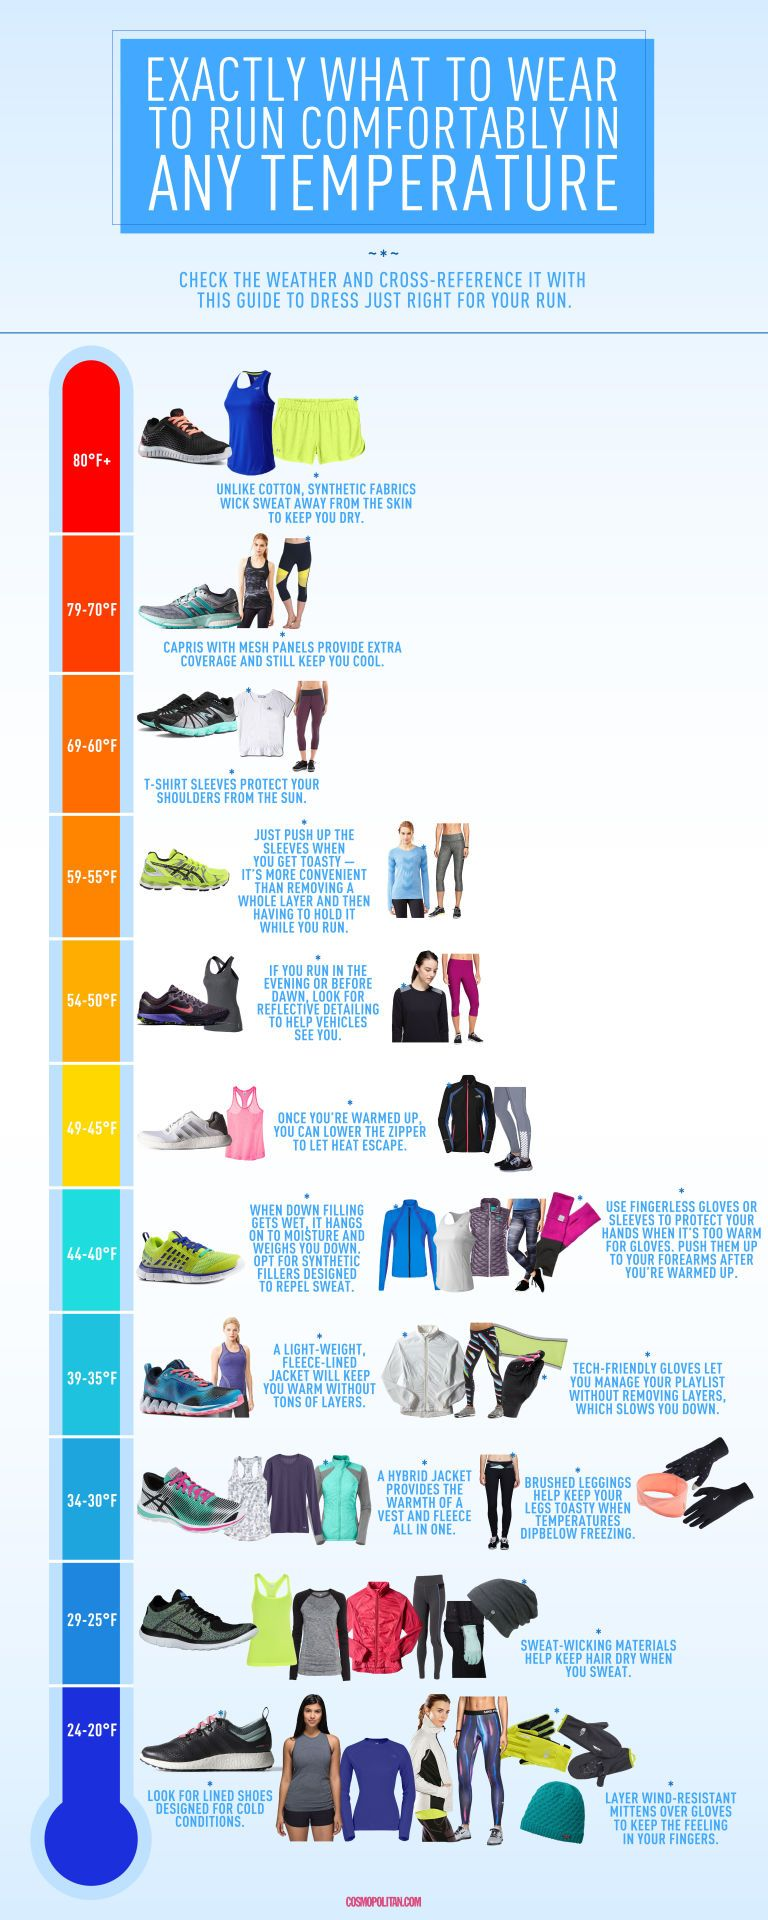 a9c72a19c3b8c Exactly What to Wear to Run Comfortably in Any Weather | COSMO Body ...